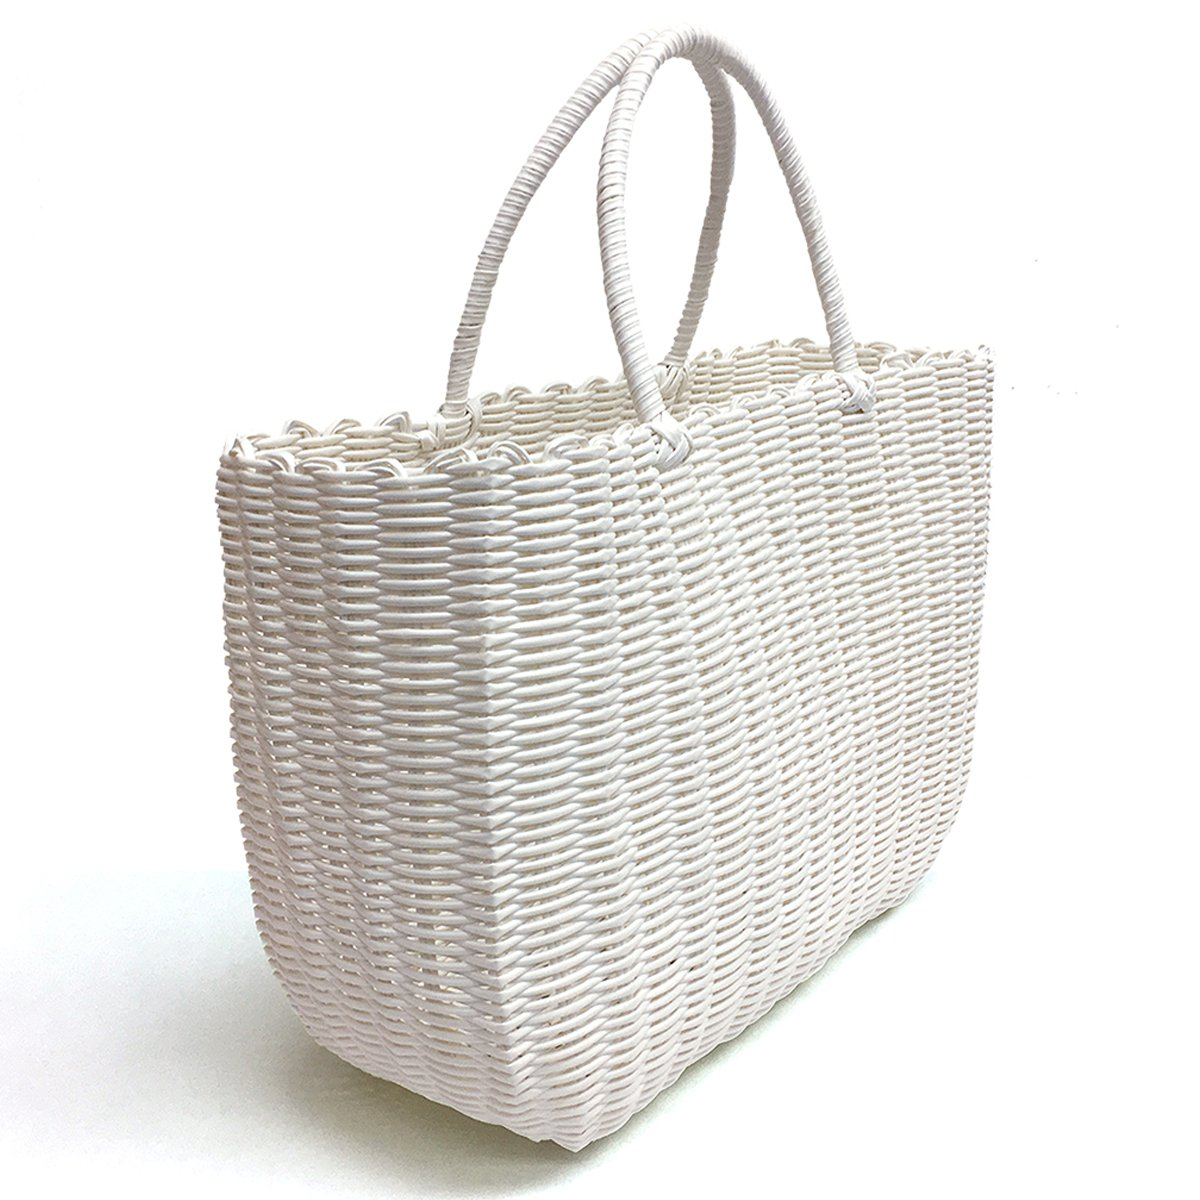 Tote Bag by Bambou, Fashion Purse Women, Waterproof Beach Bag, Ladies Shopping Bag, 100% Recycled Material (Summer White)